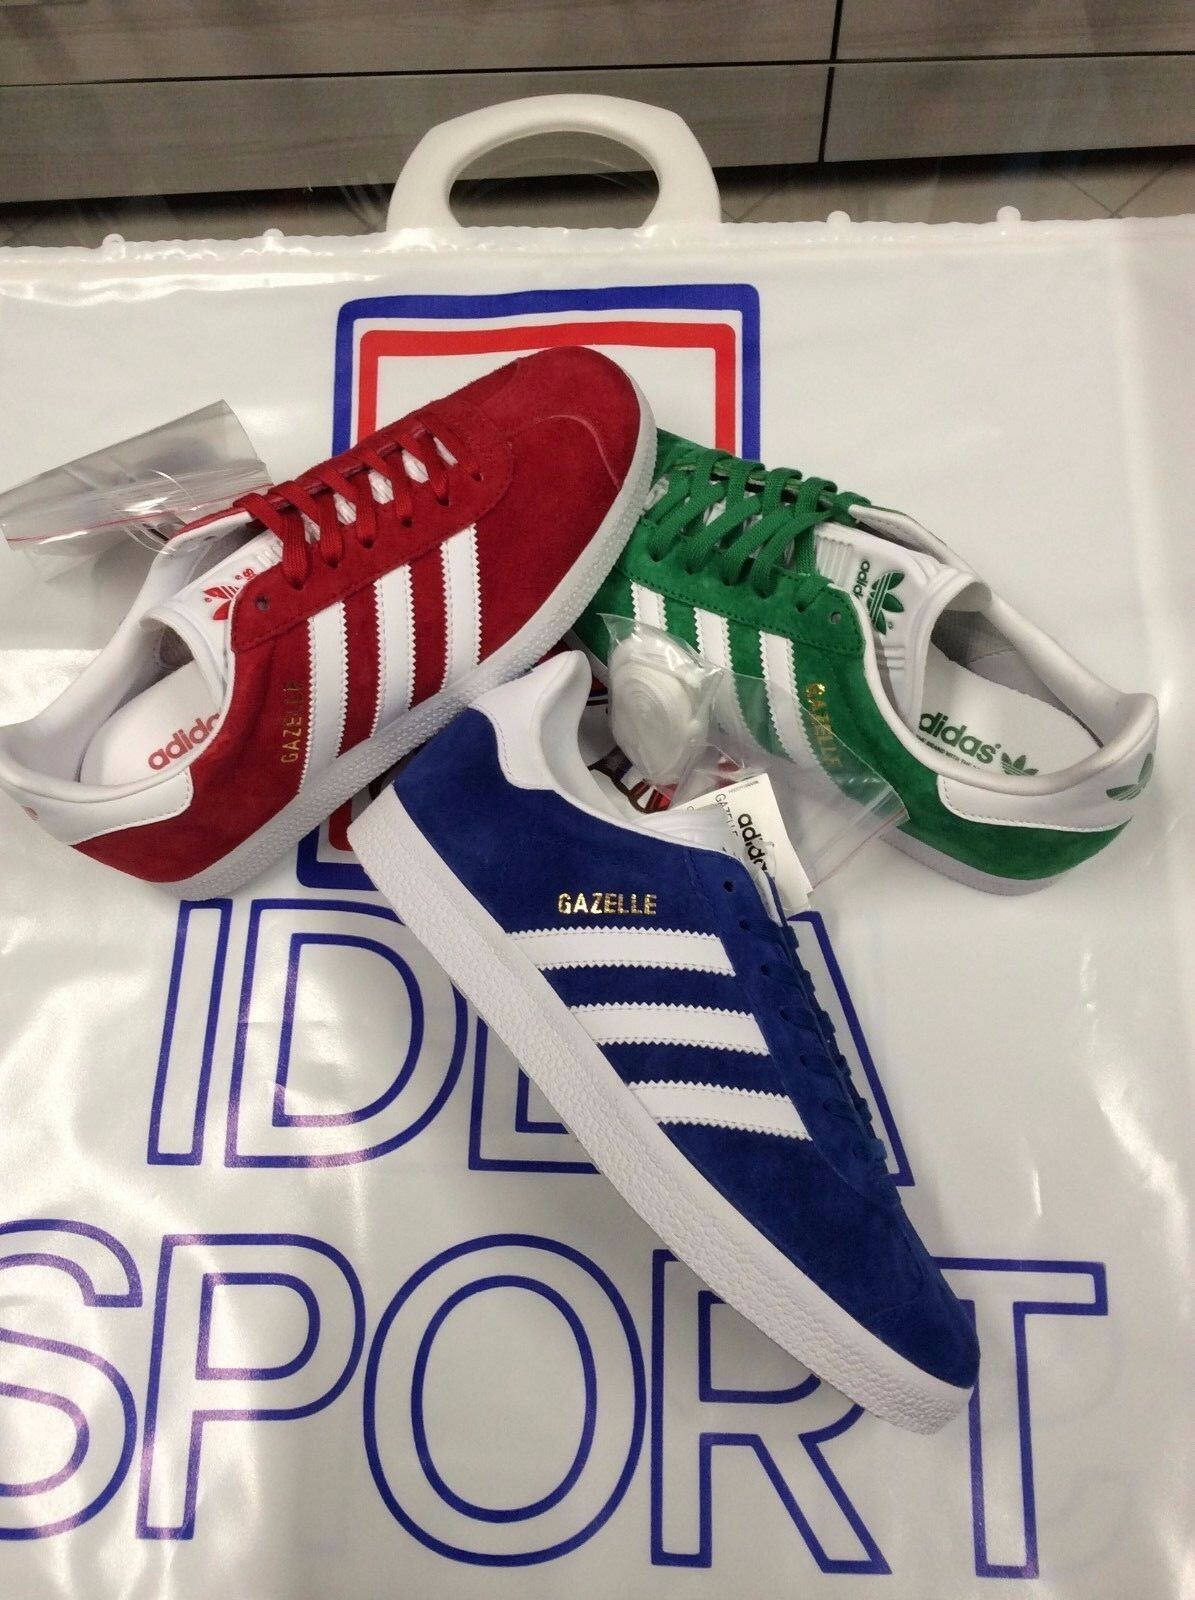 ADIDAS CHAUSSURE GAZELLE - S76228(red) -BB5477(green) -S76227(ROYAL) -BB5480(GRIG